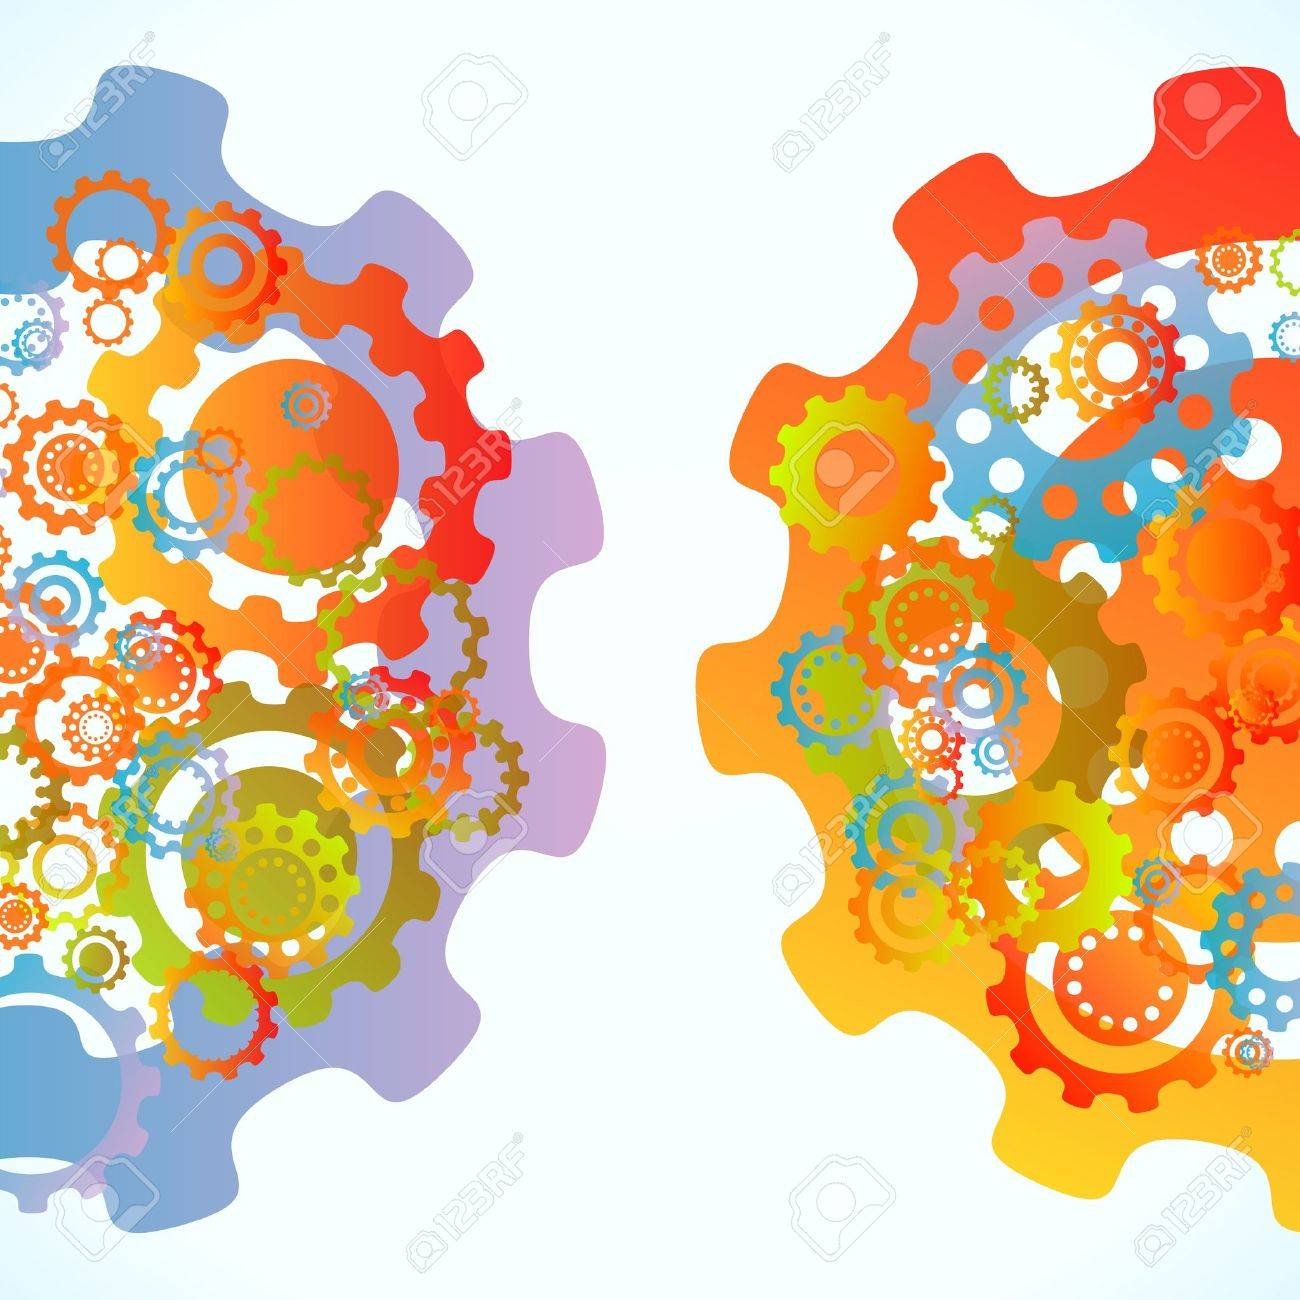 Colored cogwheels vector abstract tandem Stock Vector - 21687083